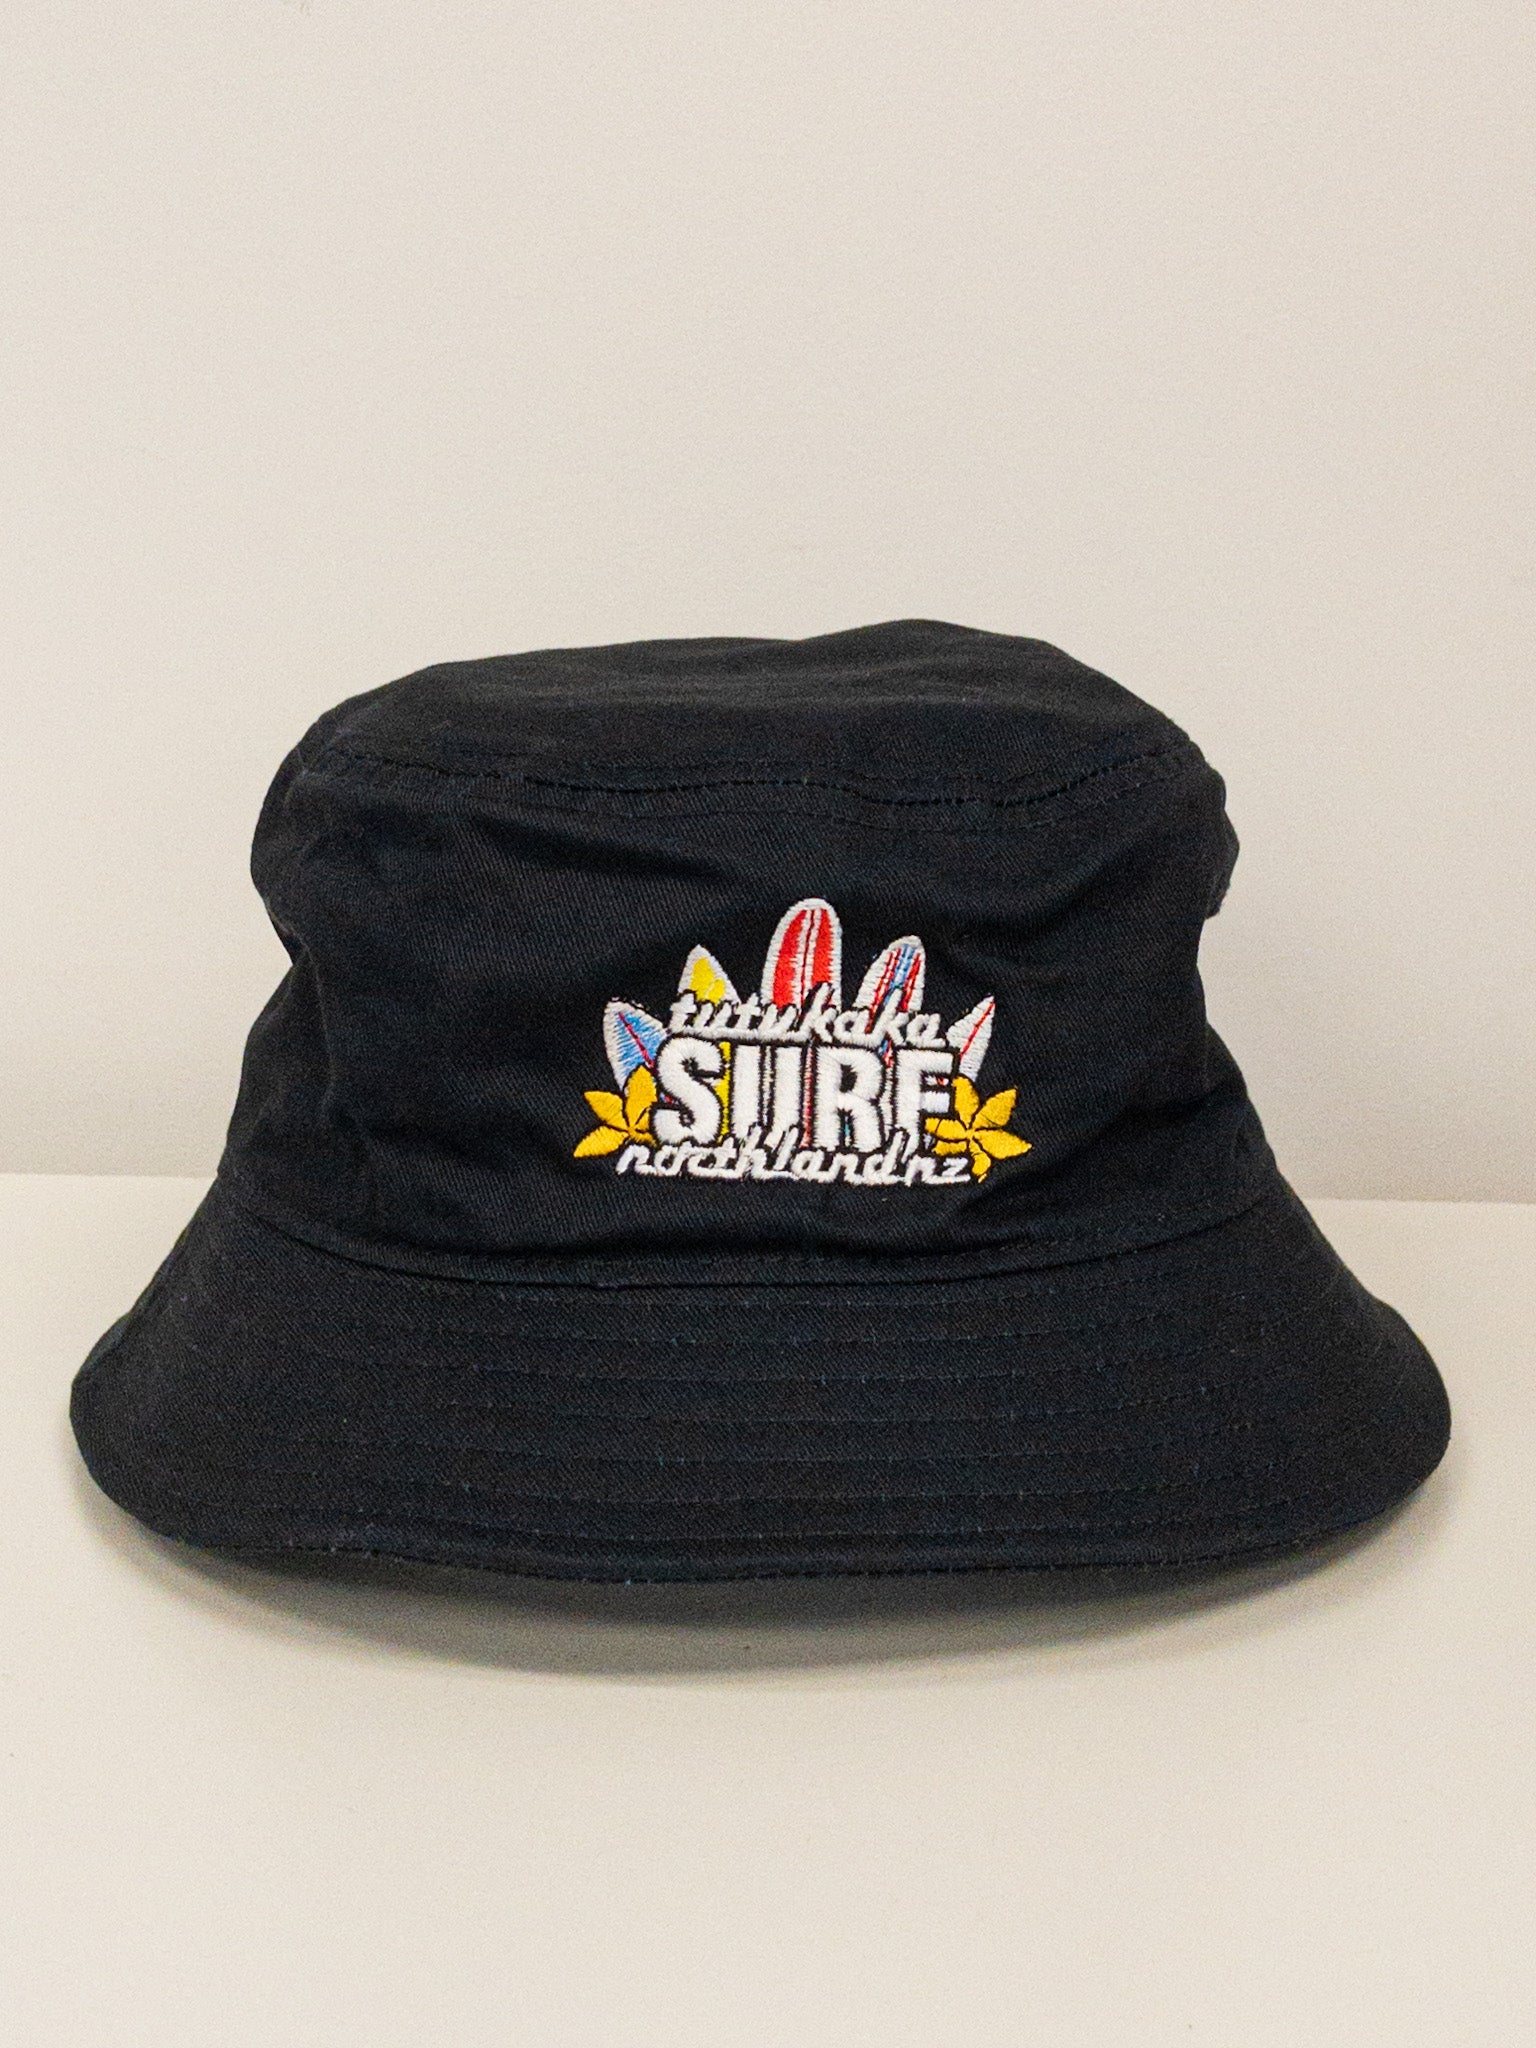 Tutukaka Surf Co. Bucket Hat